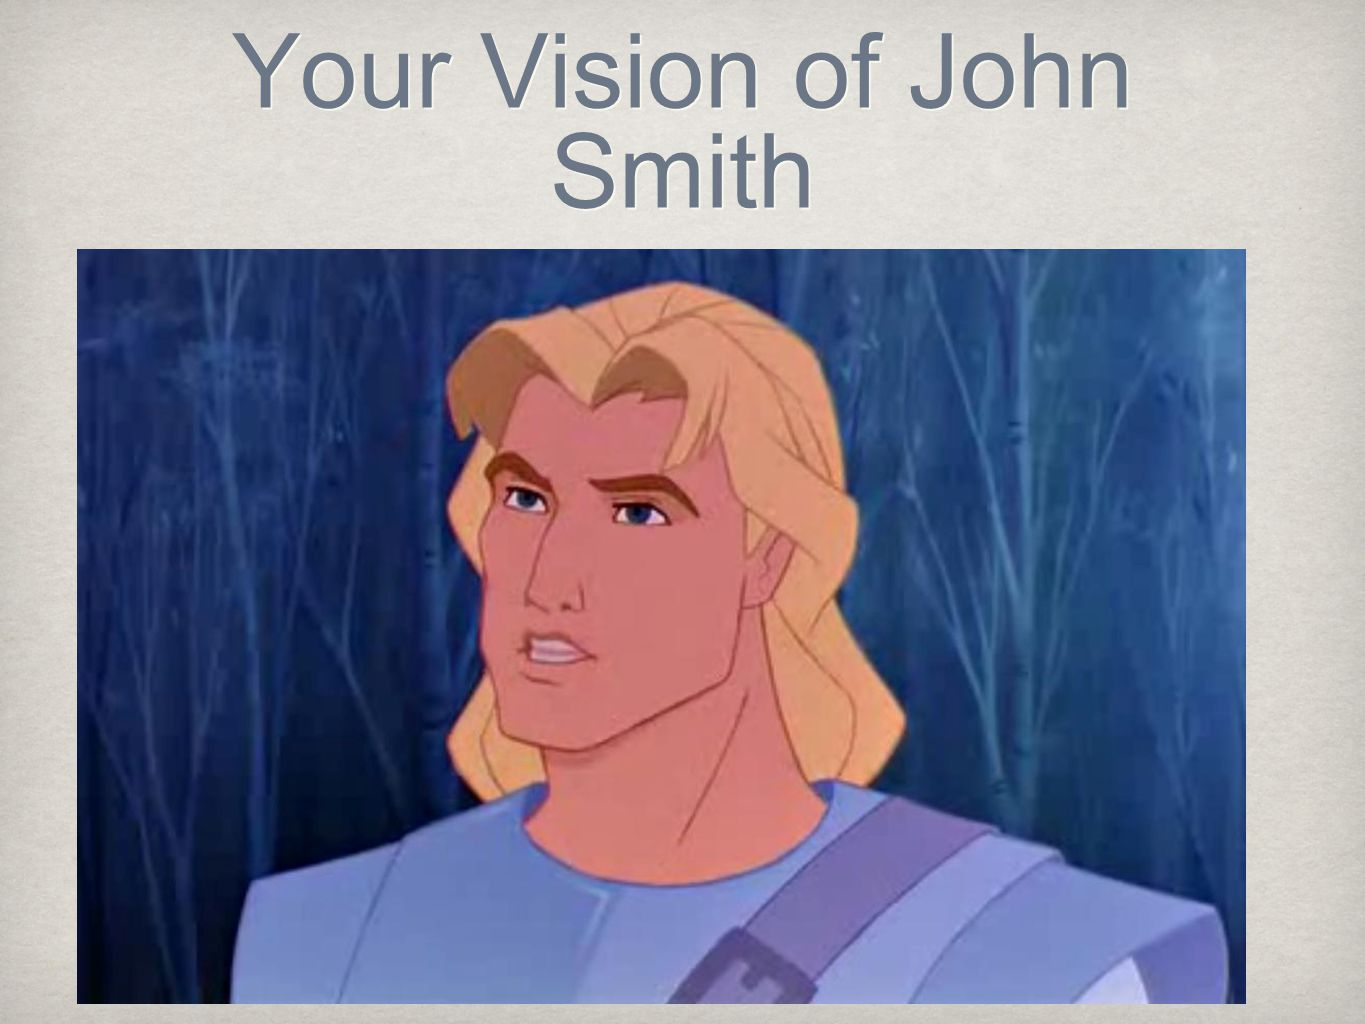 Your Vision of John Smith